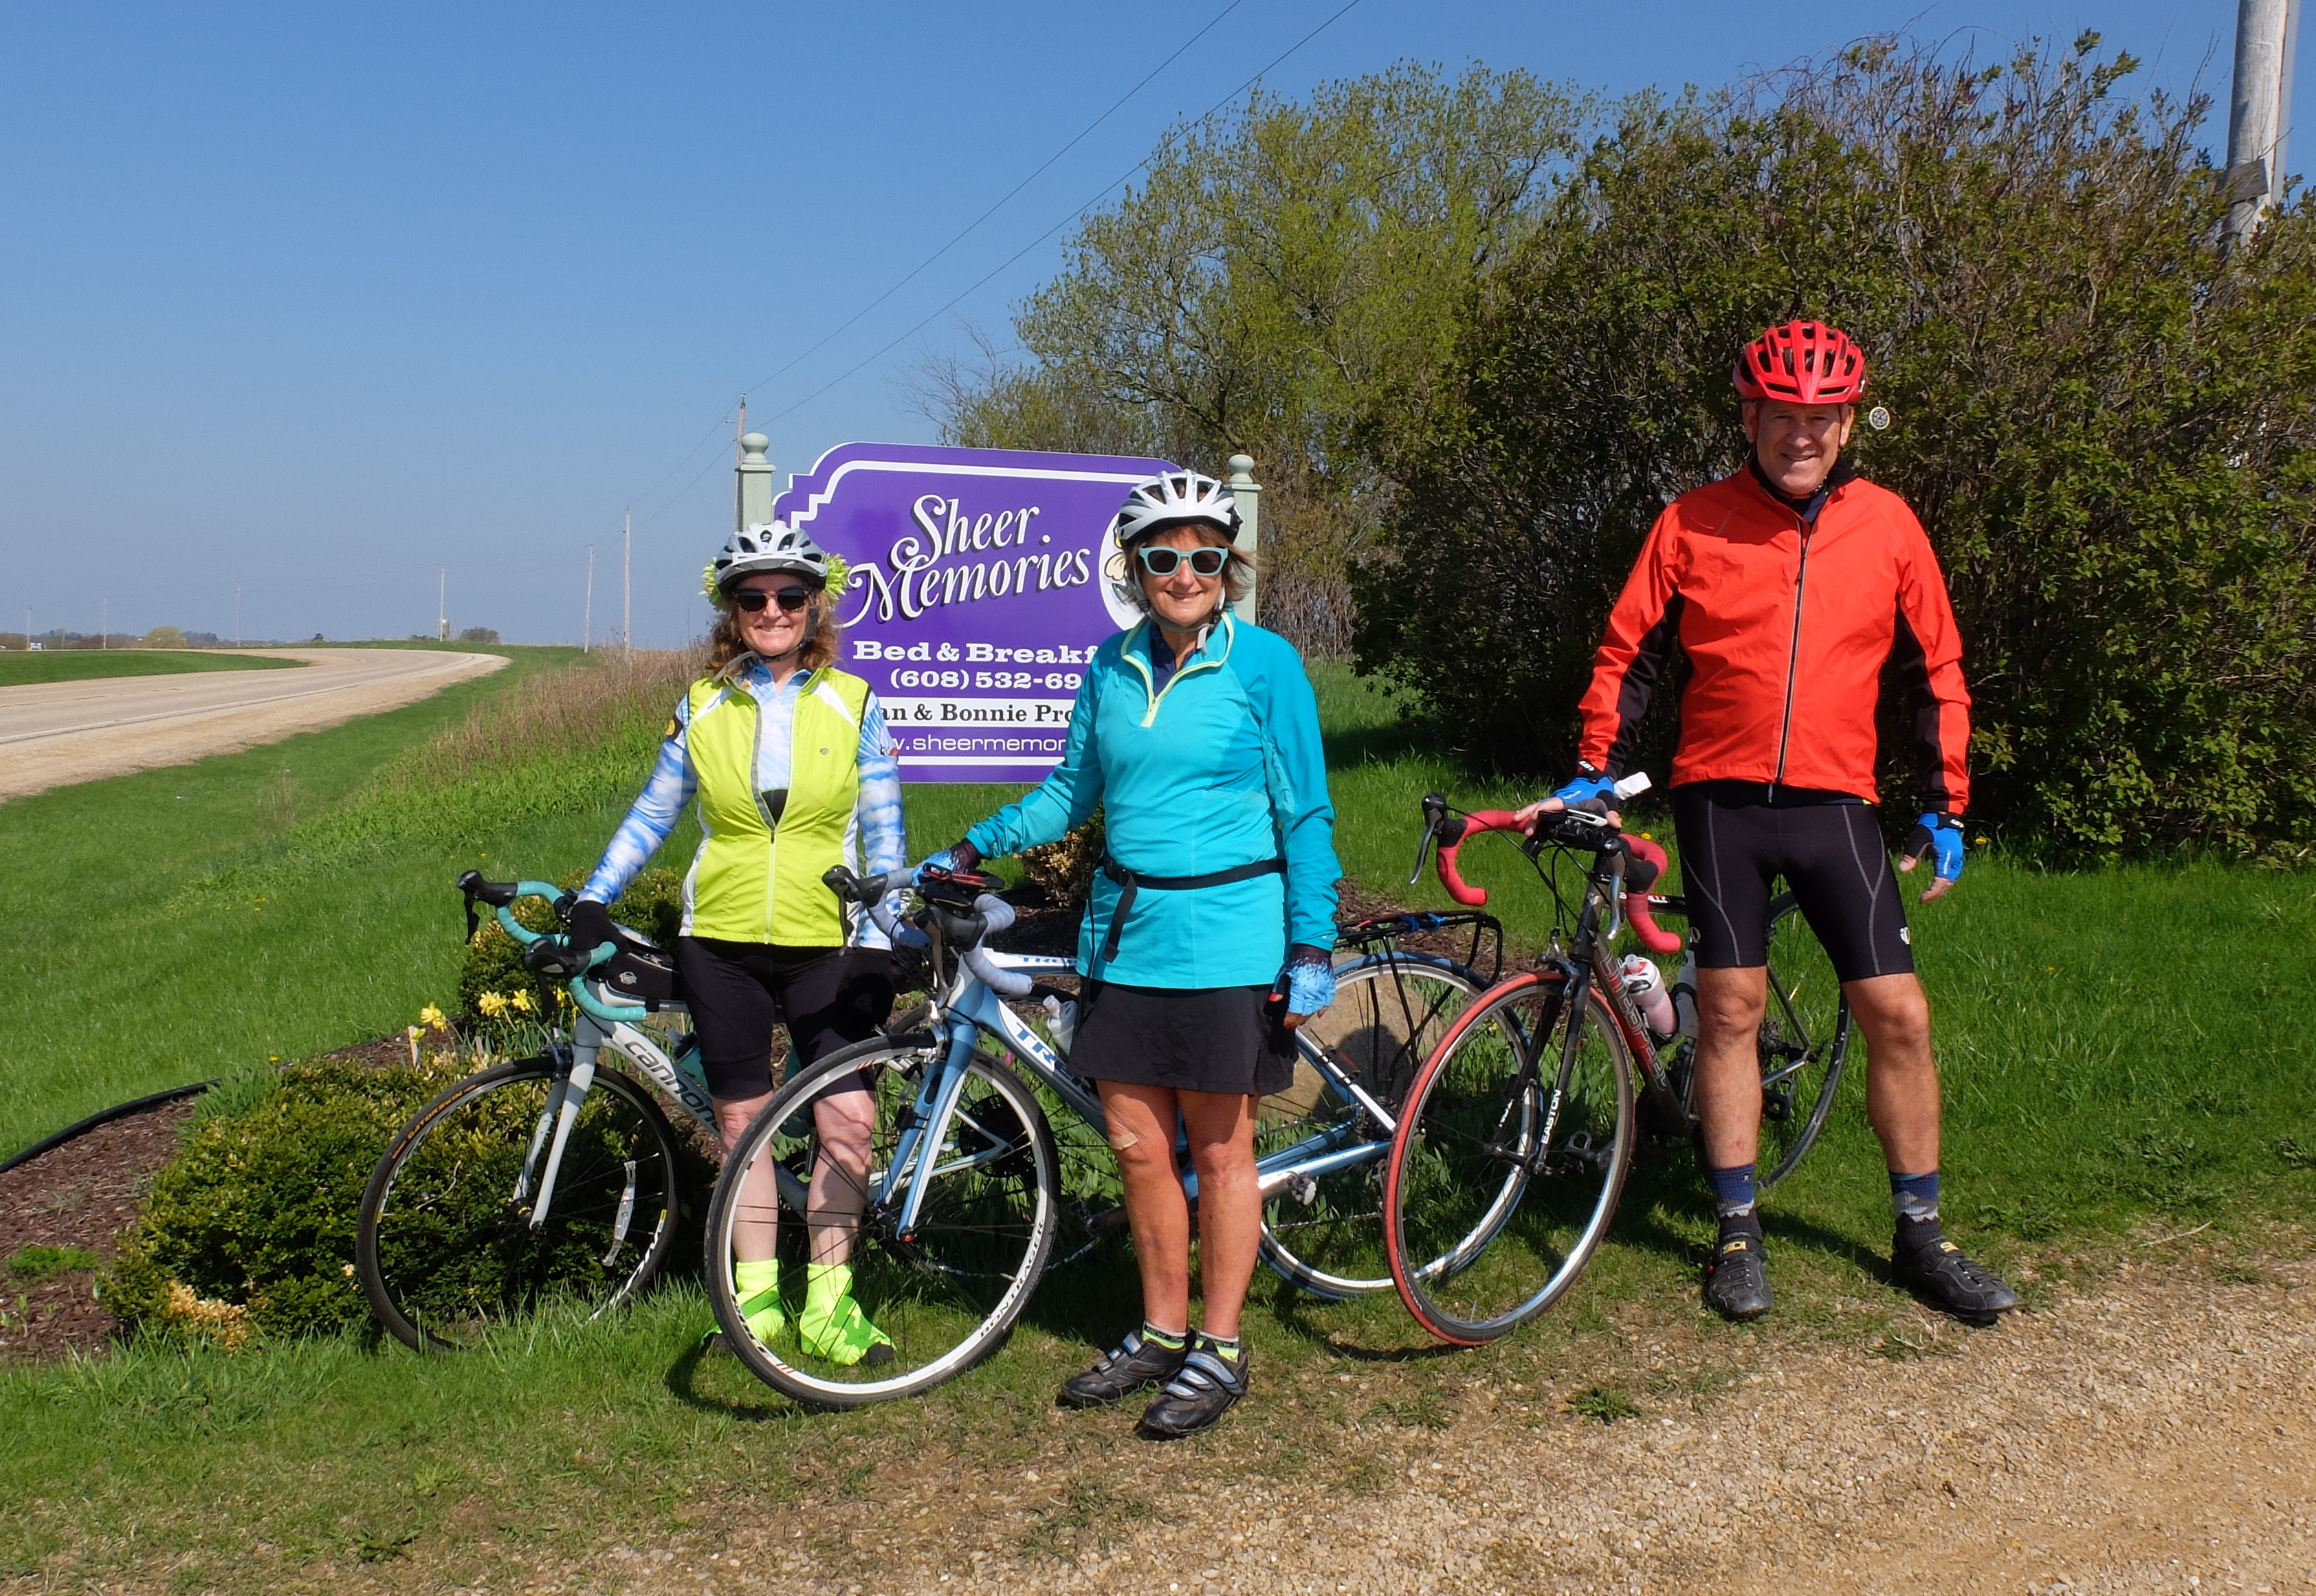 Three bikers in front of Sheer Memories B&B sign ready for trails